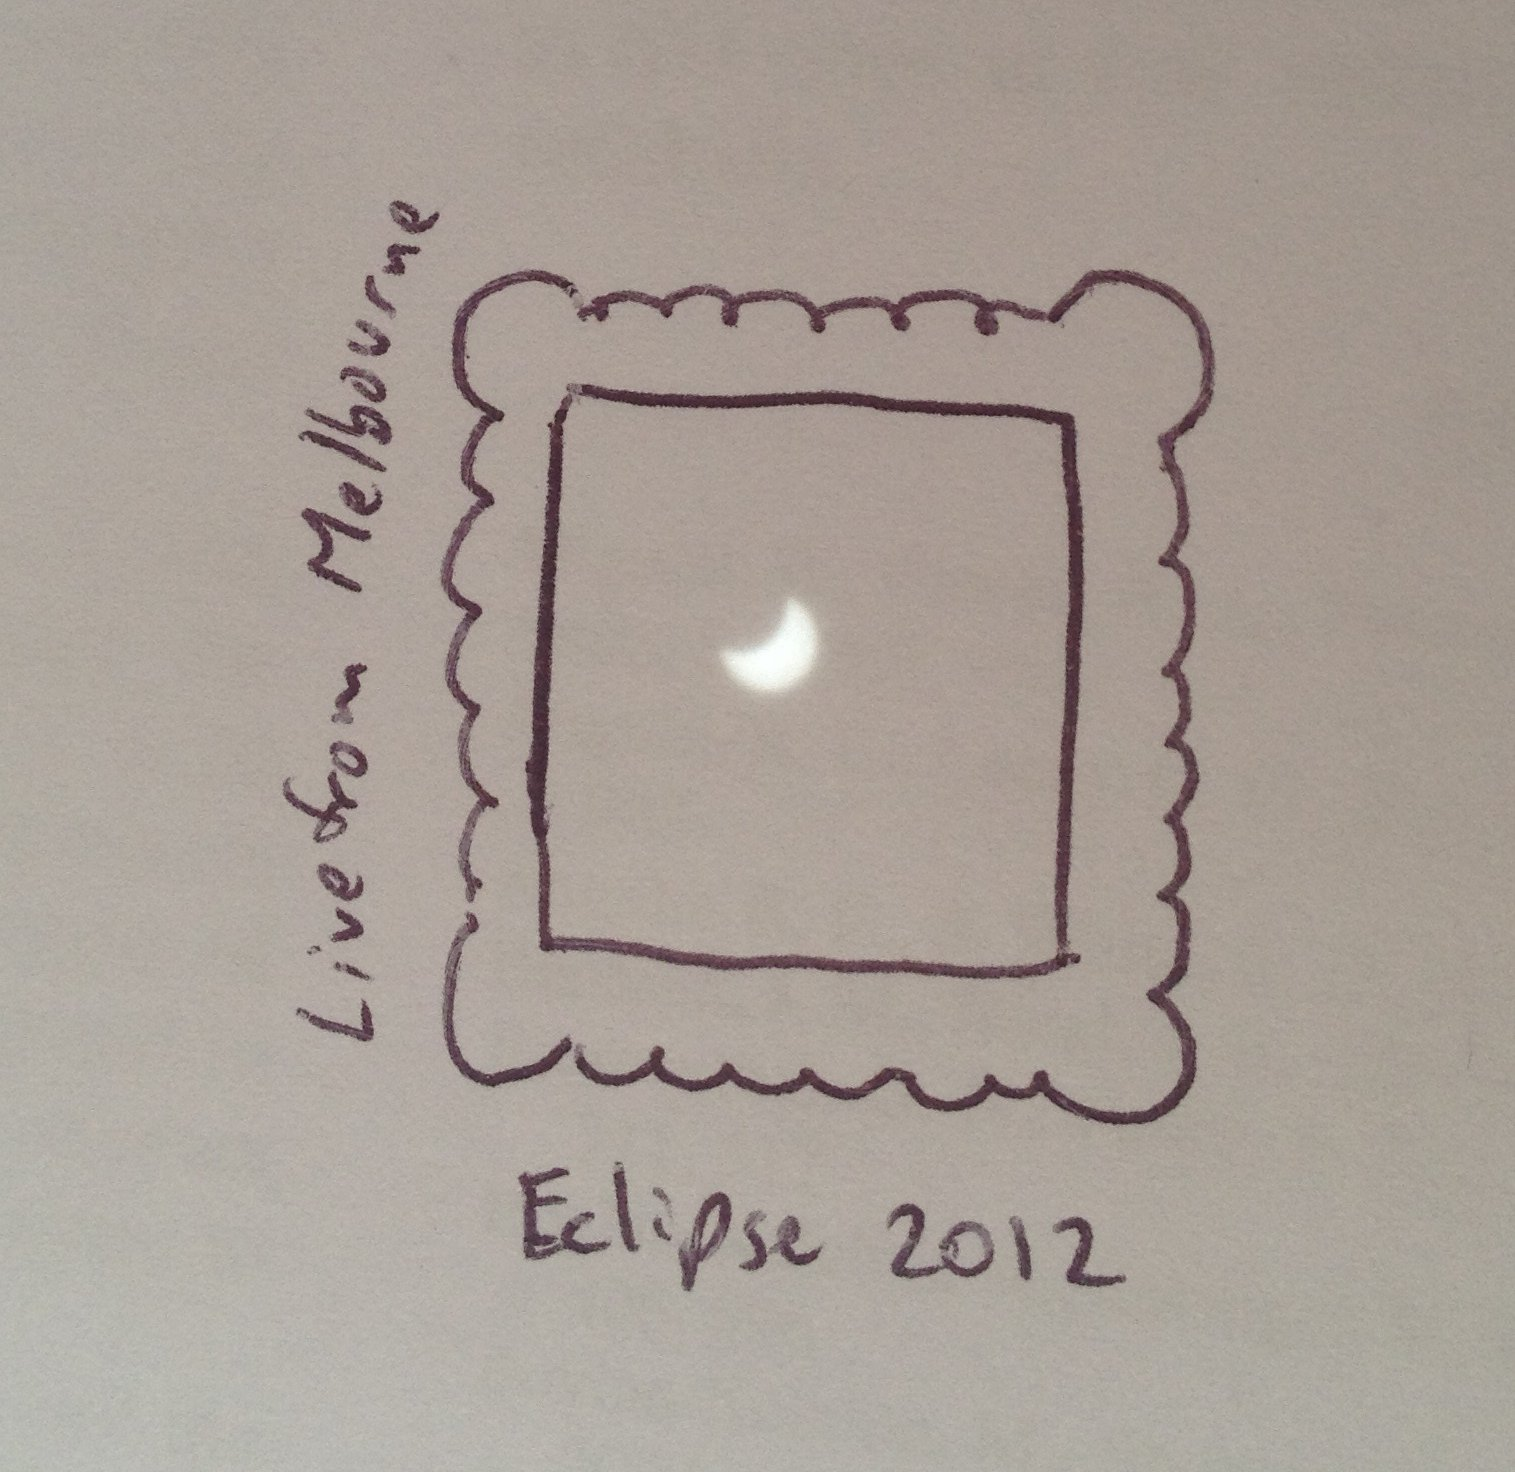 If you draw a little picture on the other surface, you can set up stuff like this. #eclipse #pinholeprojection https://t.co/JZRQqLz5A7